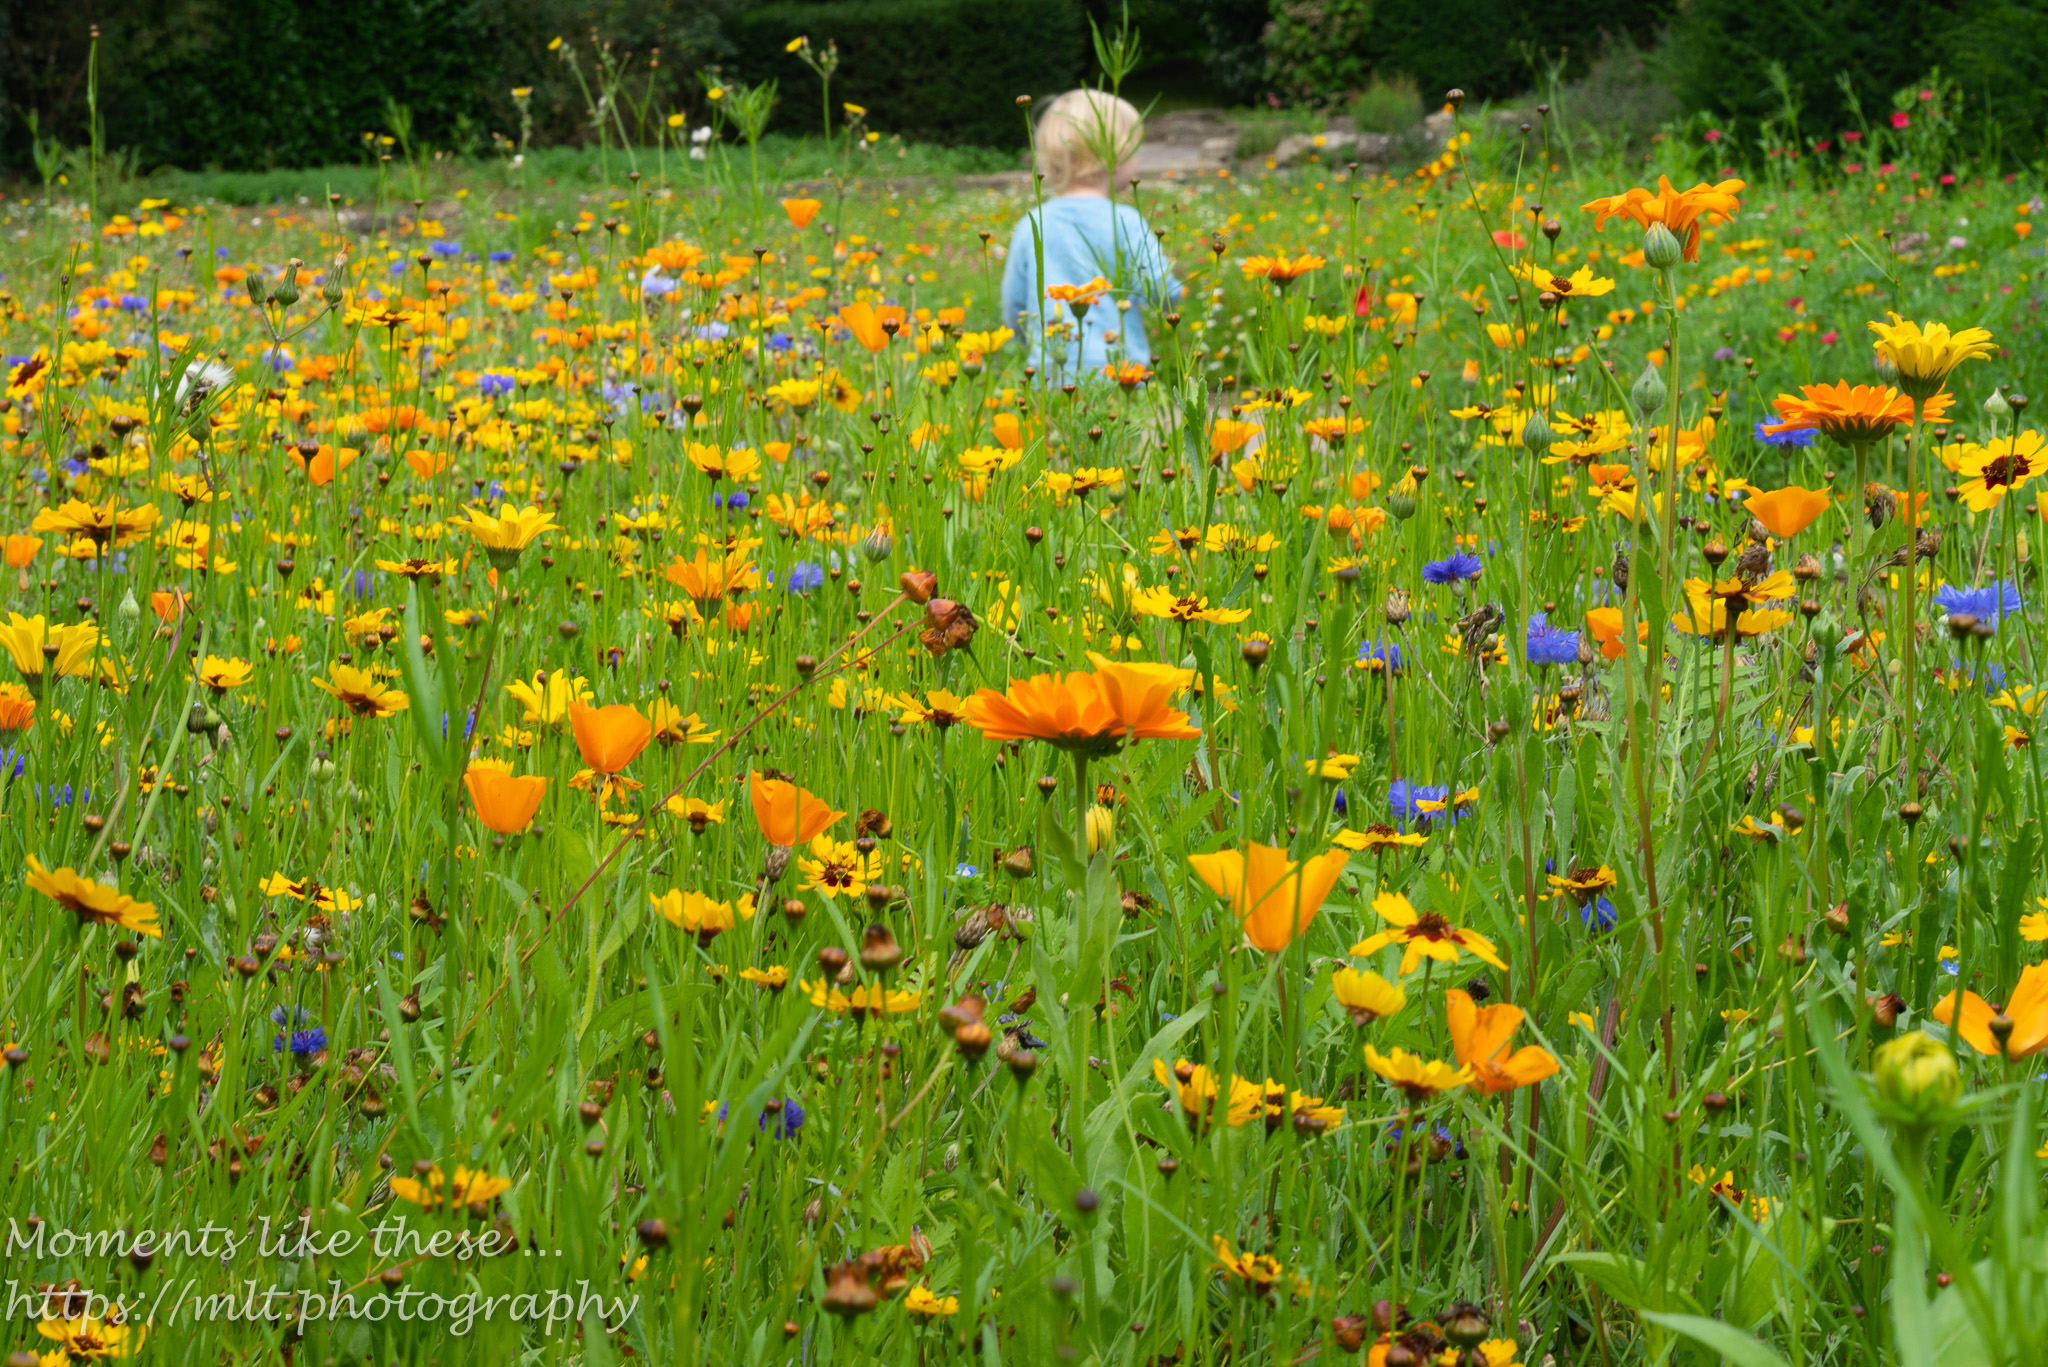 In the meadow - Dyffryn Gardens